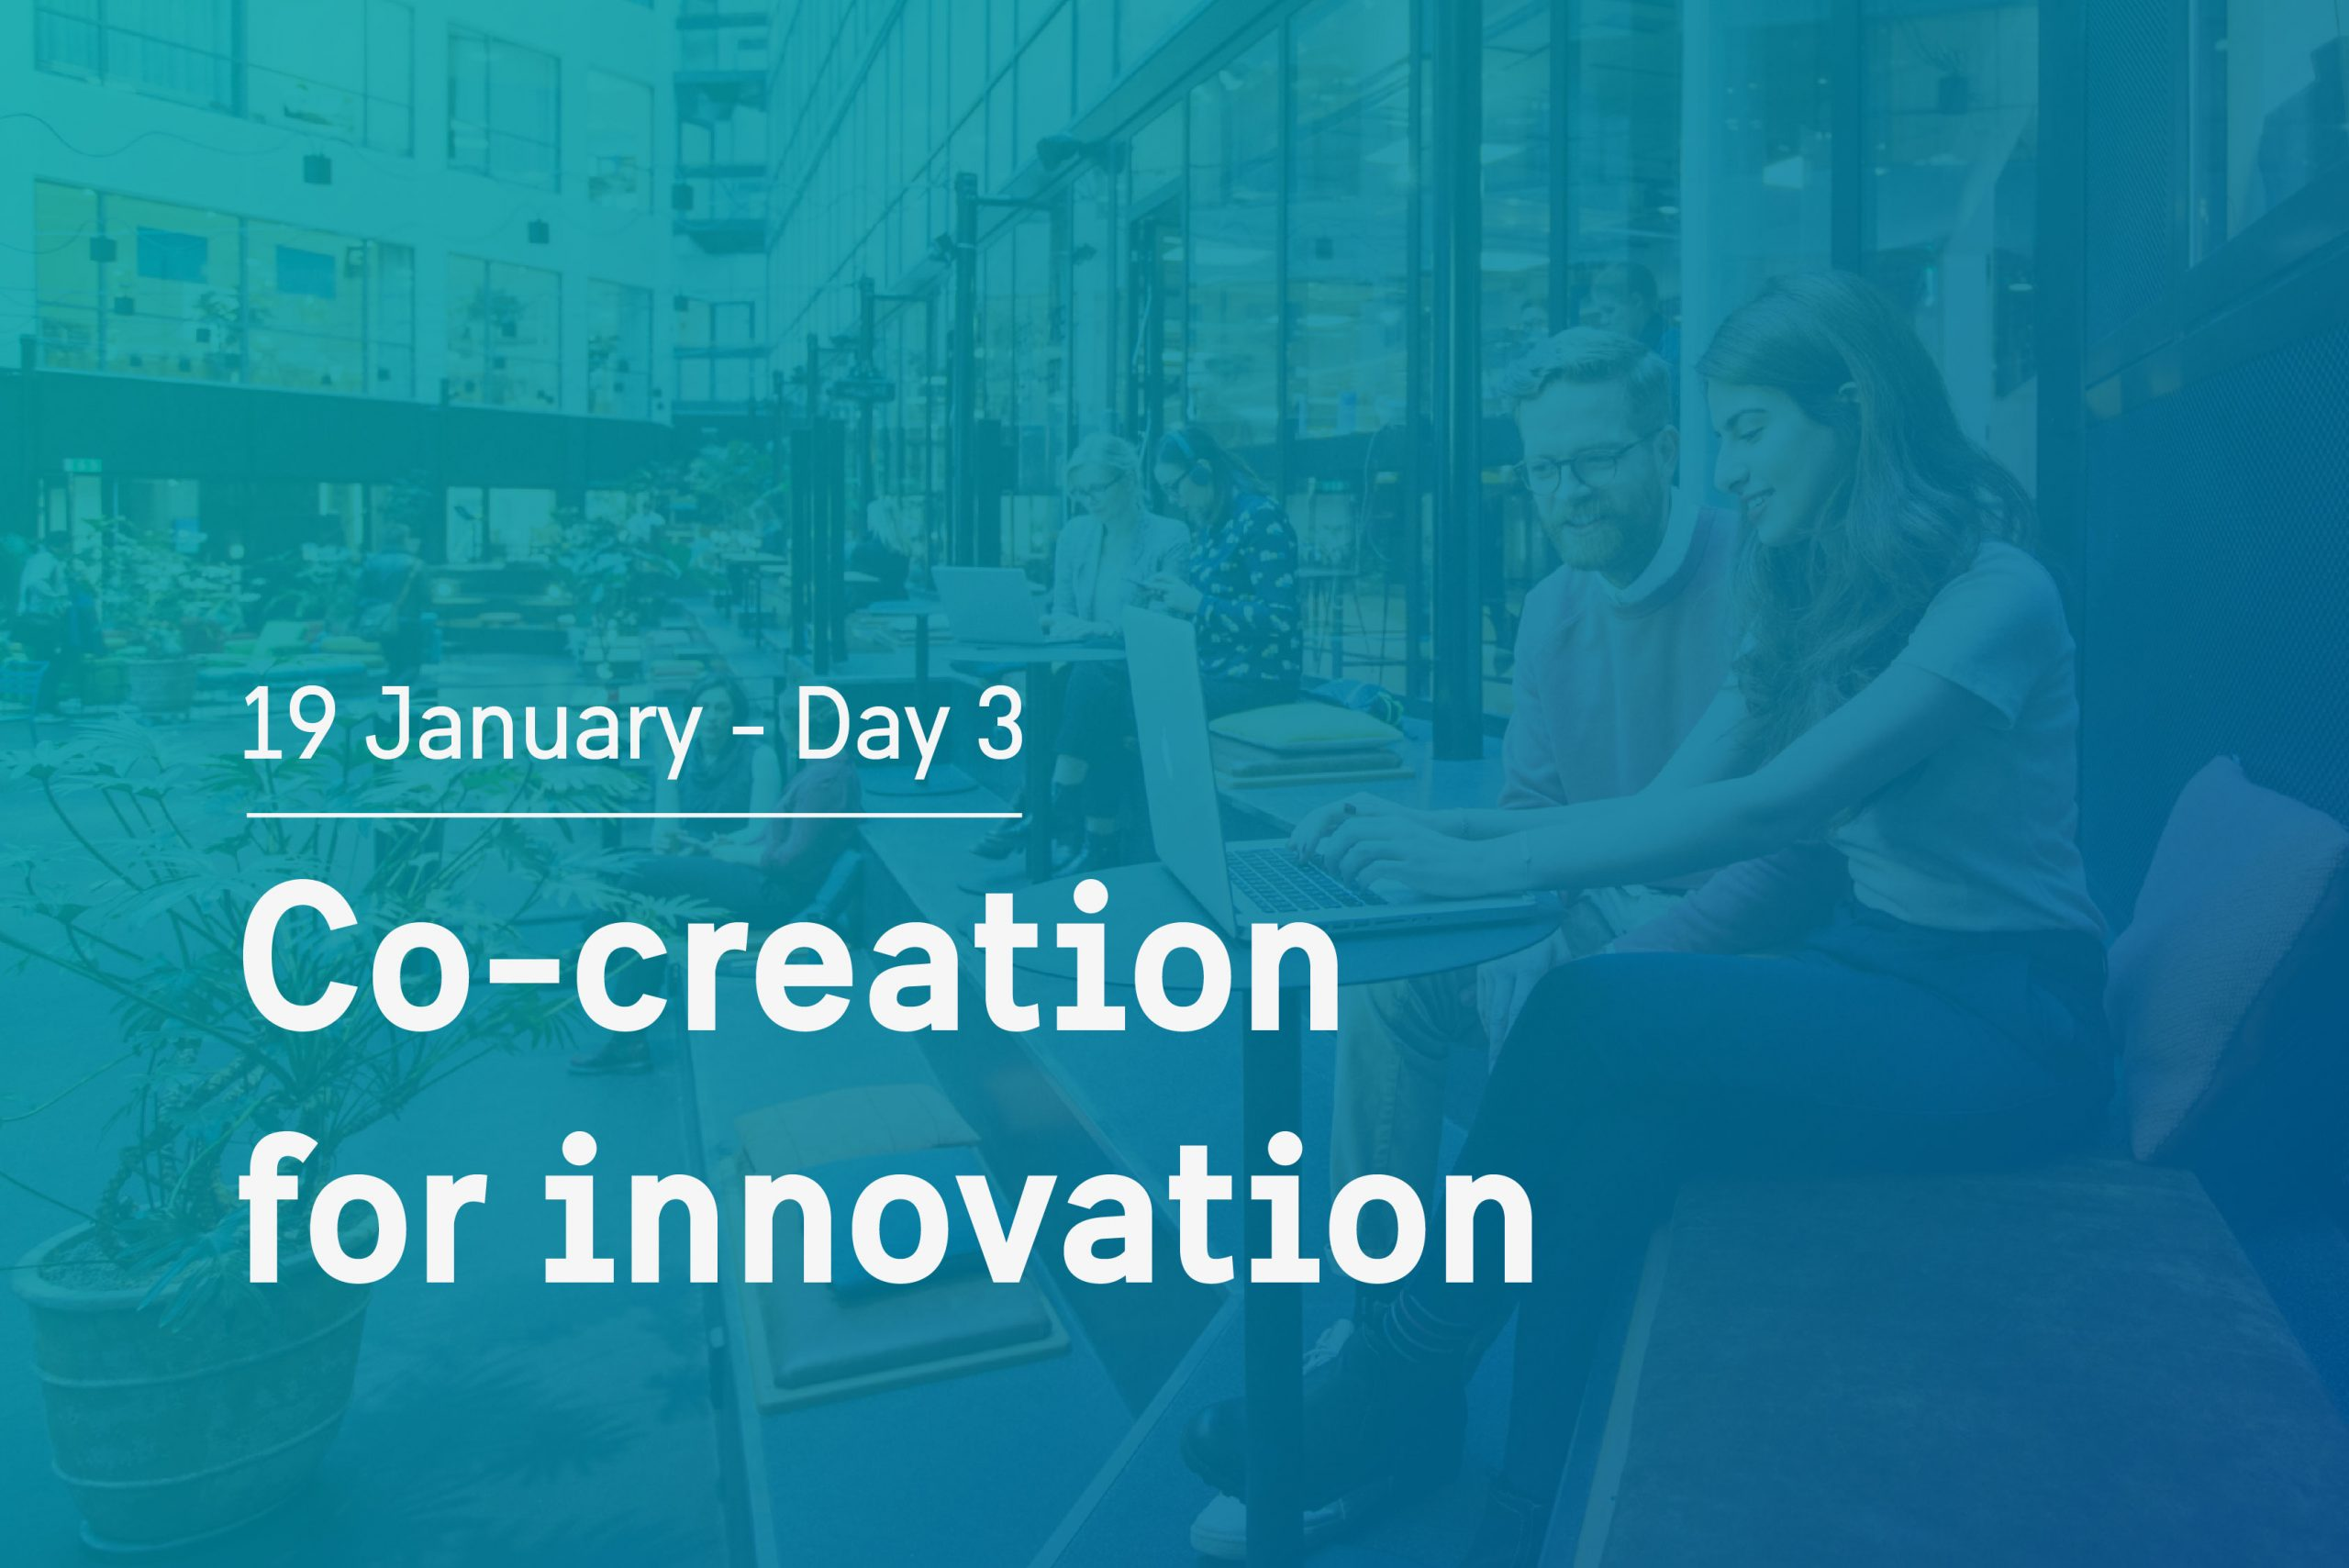 Day 3 theme: Co-creation for innovation